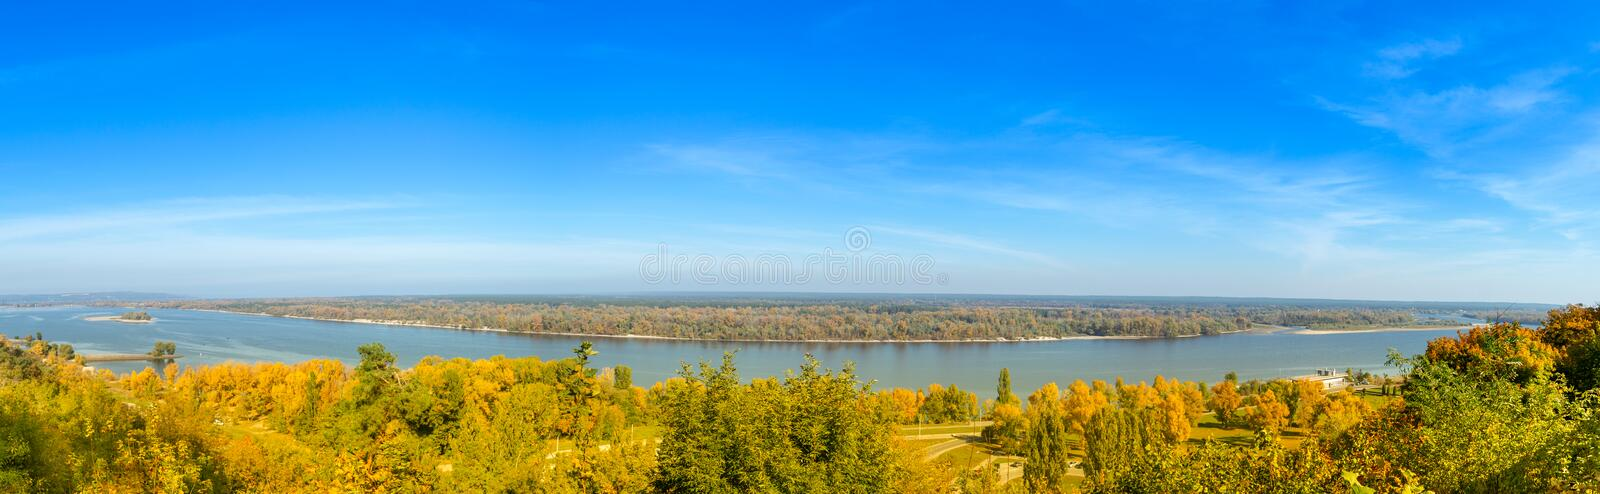 Panoramic view of the Dnieper River in autumn. Kaniv, Ukraine, Tarasova Hill Chernecha Hora royalty free stock image